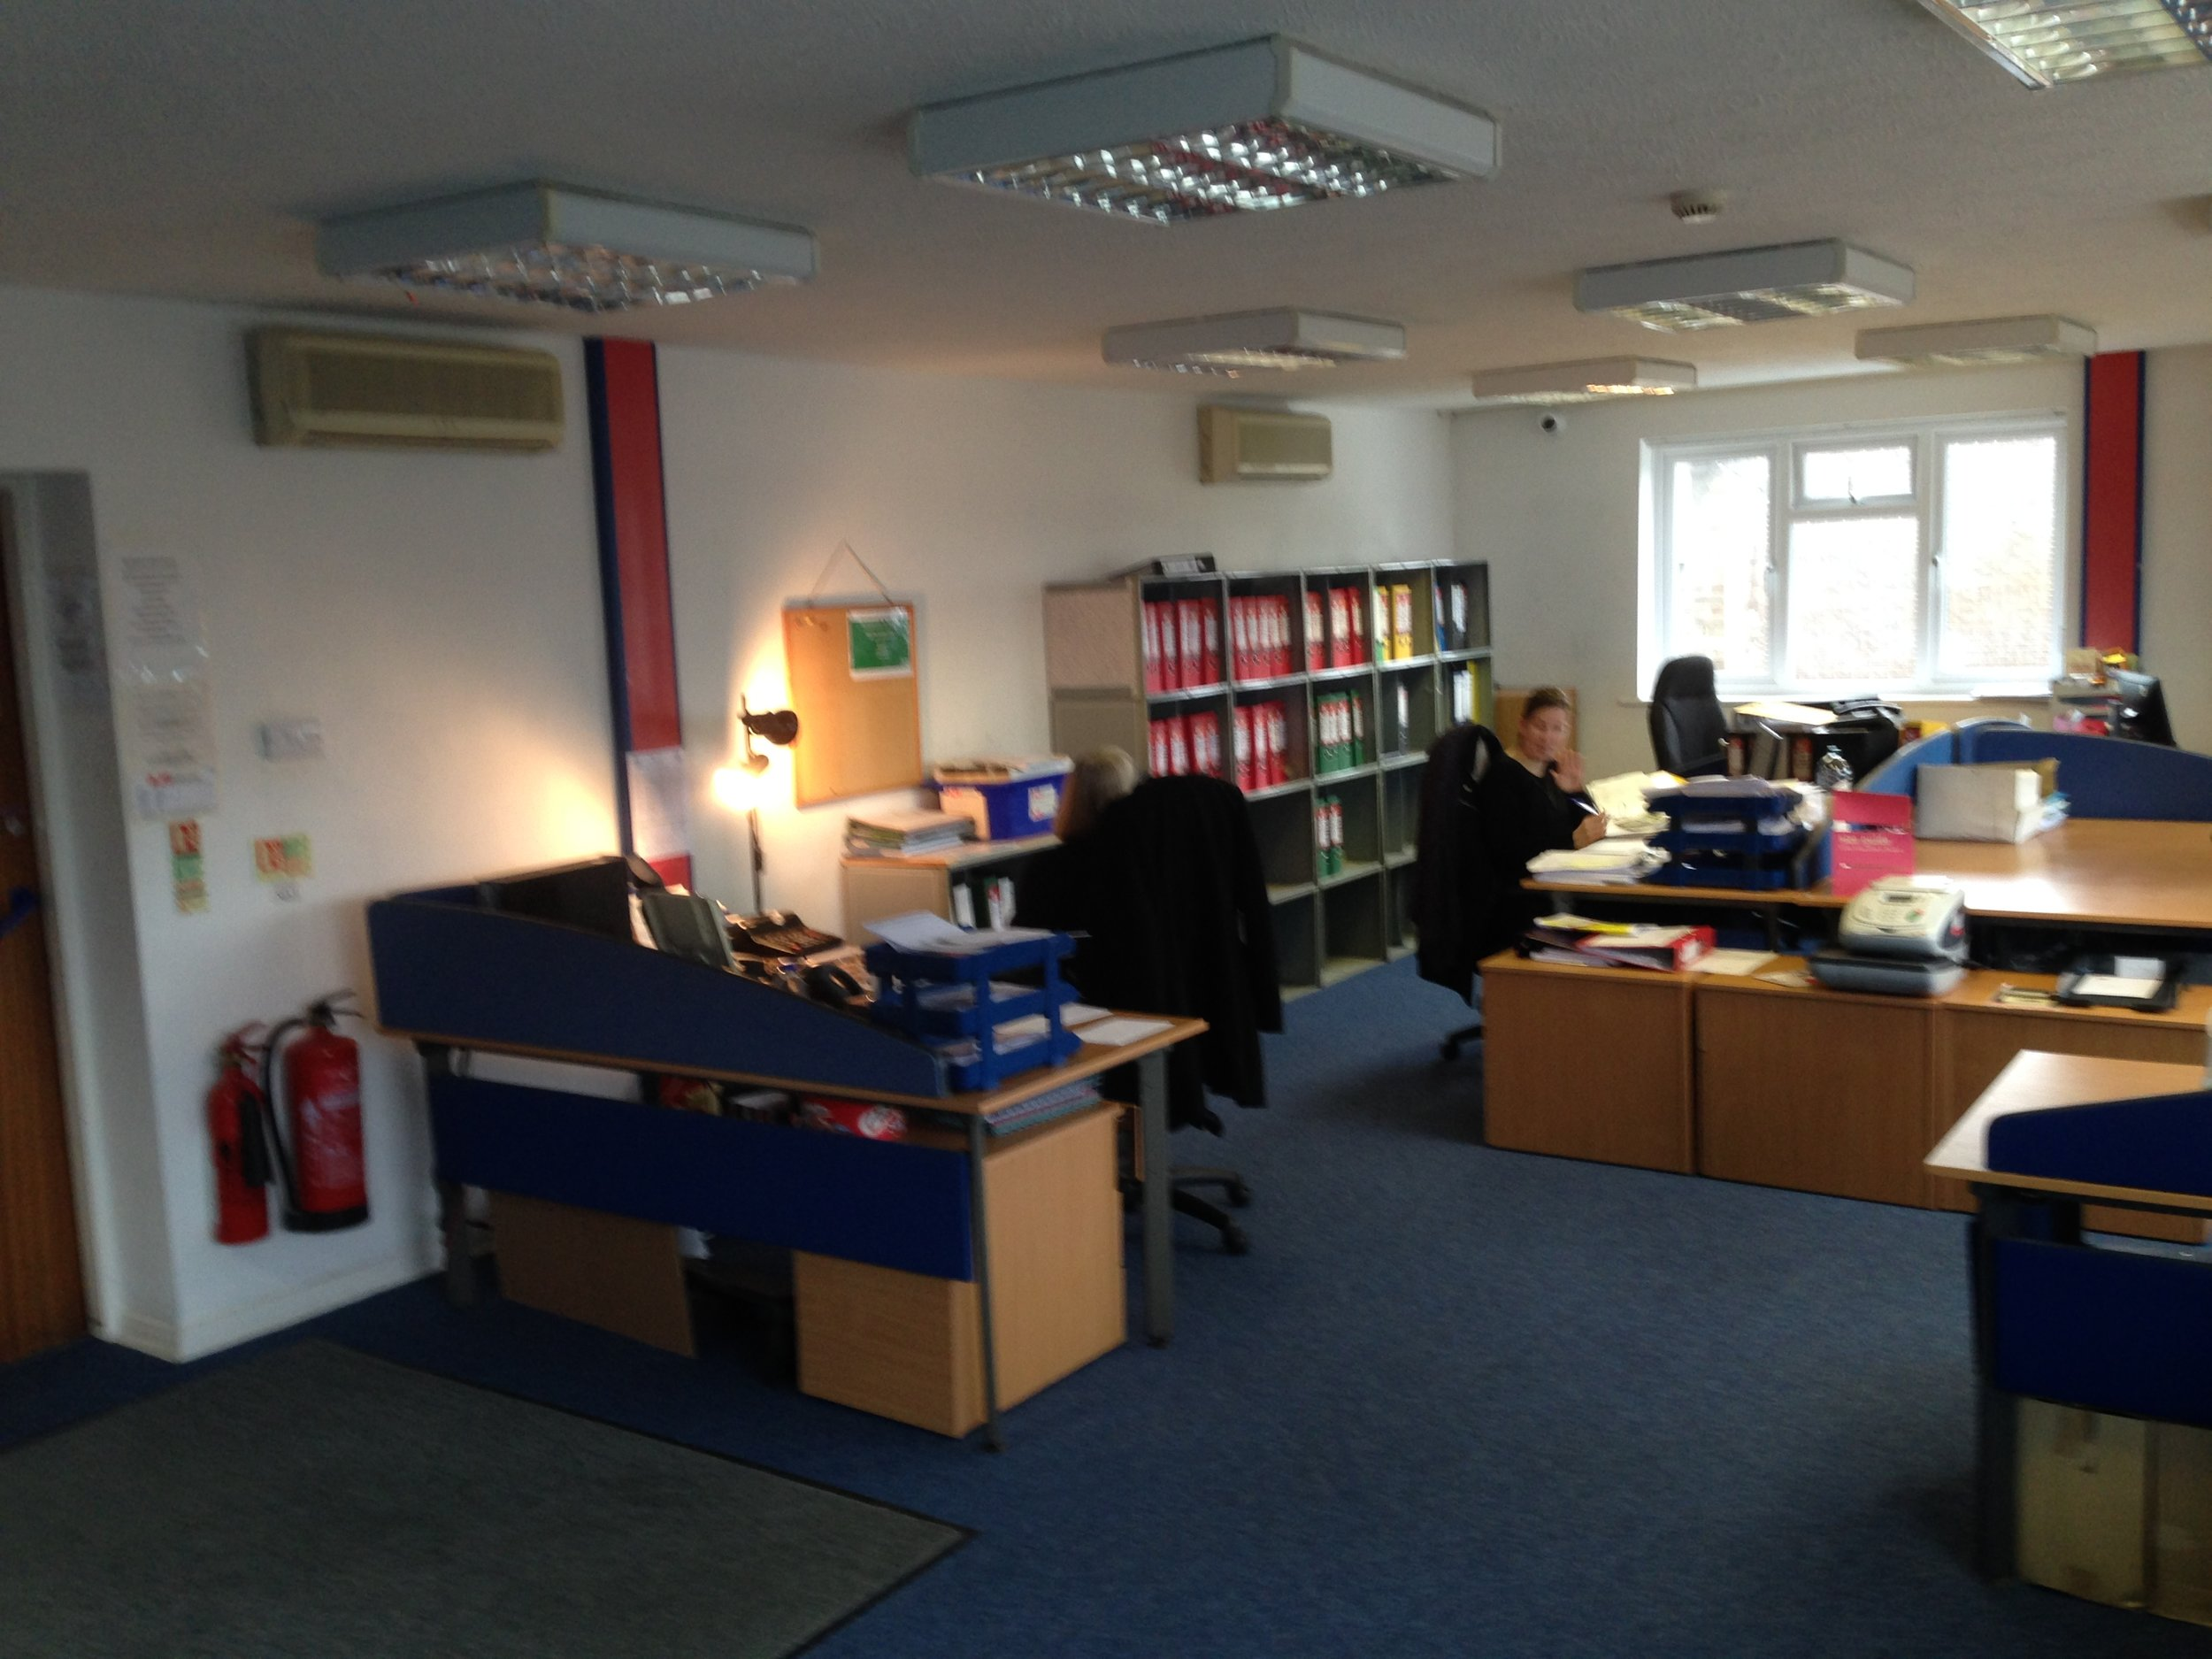 Office remodelling - design and refit - Littlehampton manufacturing sector-10